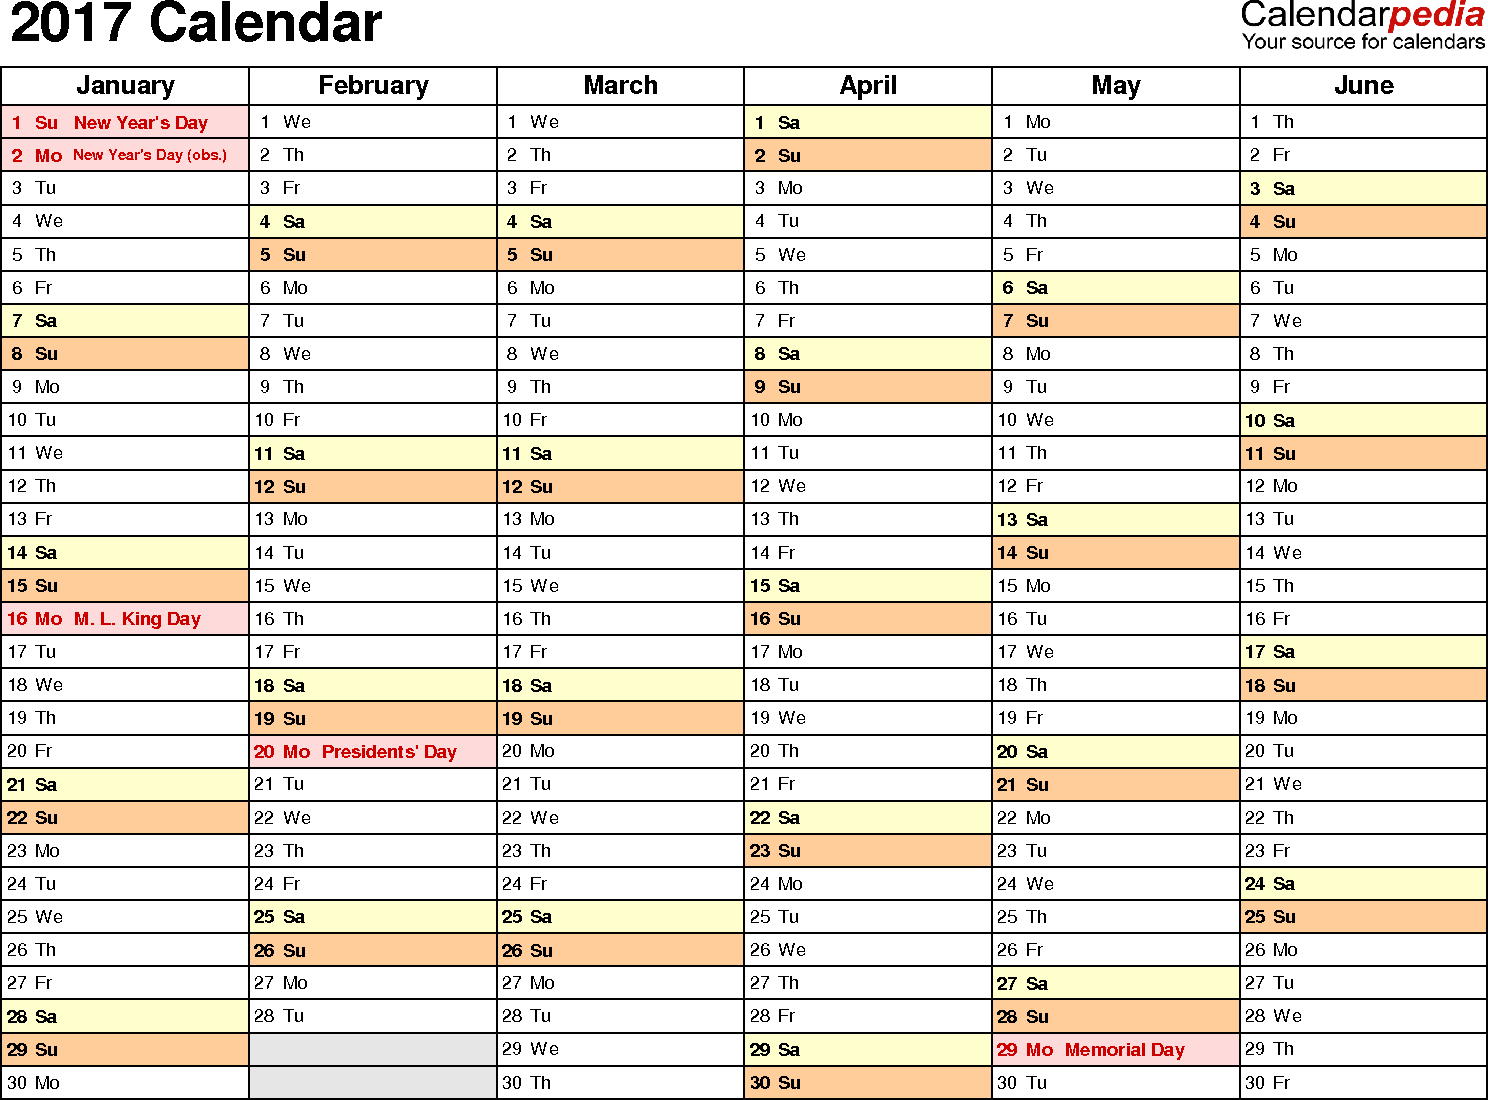 Ediblewildsus  Nice  Calendar  Download  Free Printable Excel Templates Xls With Likable Template   Calendar For Excel Months Horizontally  Pages Landscape Orientation With Alluring Excel High School Review Also Sum Range Excel In Addition Excel Validation List And Weekday Name In Excel As Well As Sample Mean Excel Additionally Schedule Layout Excel From Calendarpediacom With Ediblewildsus  Likable  Calendar  Download  Free Printable Excel Templates Xls With Alluring Template   Calendar For Excel Months Horizontally  Pages Landscape Orientation And Nice Excel High School Review Also Sum Range Excel In Addition Excel Validation List From Calendarpediacom